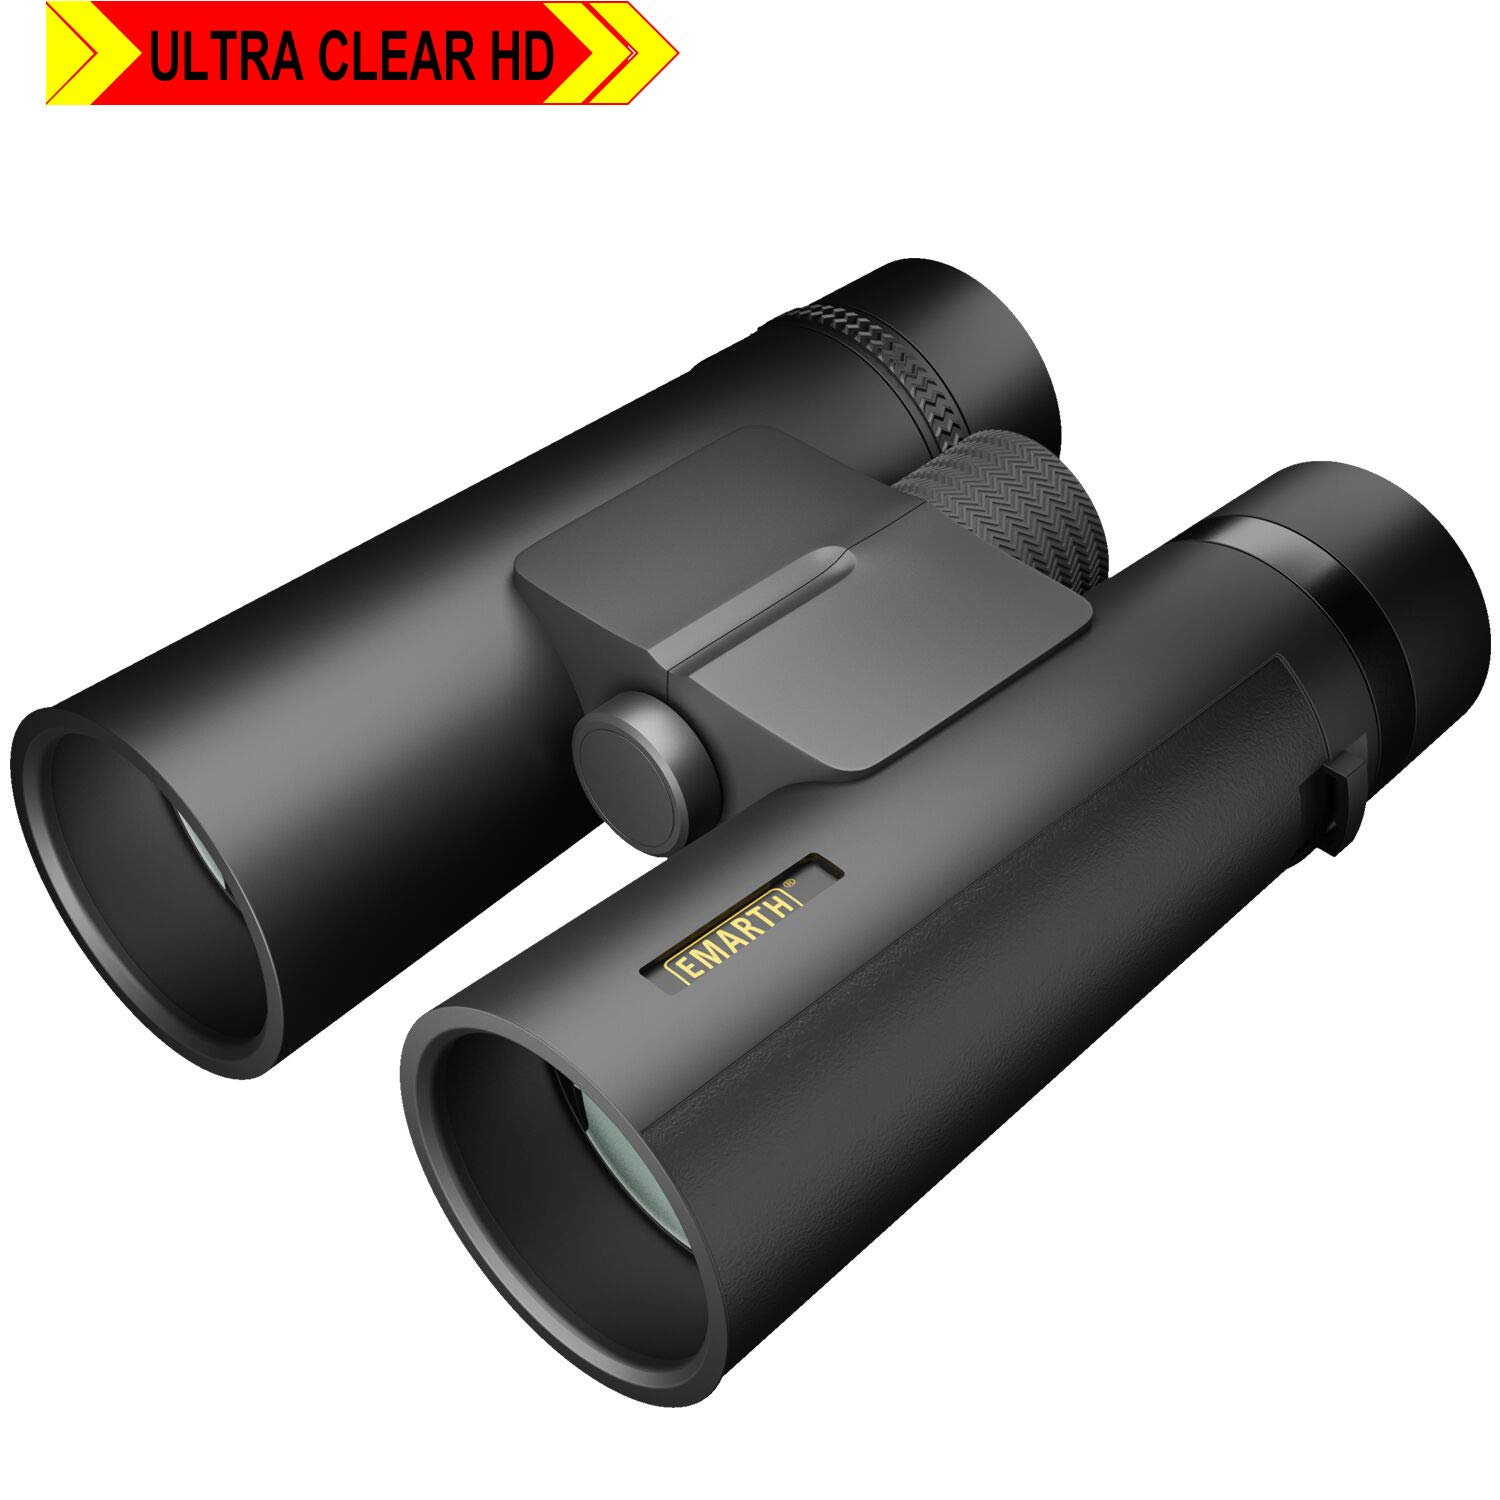 有名なブランド 10 x x 42双眼鏡for B07C8R5RKM Adults,コンパクト防水Fogproof lens-with HD Professional双眼鏡for Bird Watching旅行Stargazing Hunting sports-bak4コンサートプリズムFMC lens-with Carryingバッグ B07C8R5RKM, セキジョウマチ:31fbf31c --- by.specpricep.ru